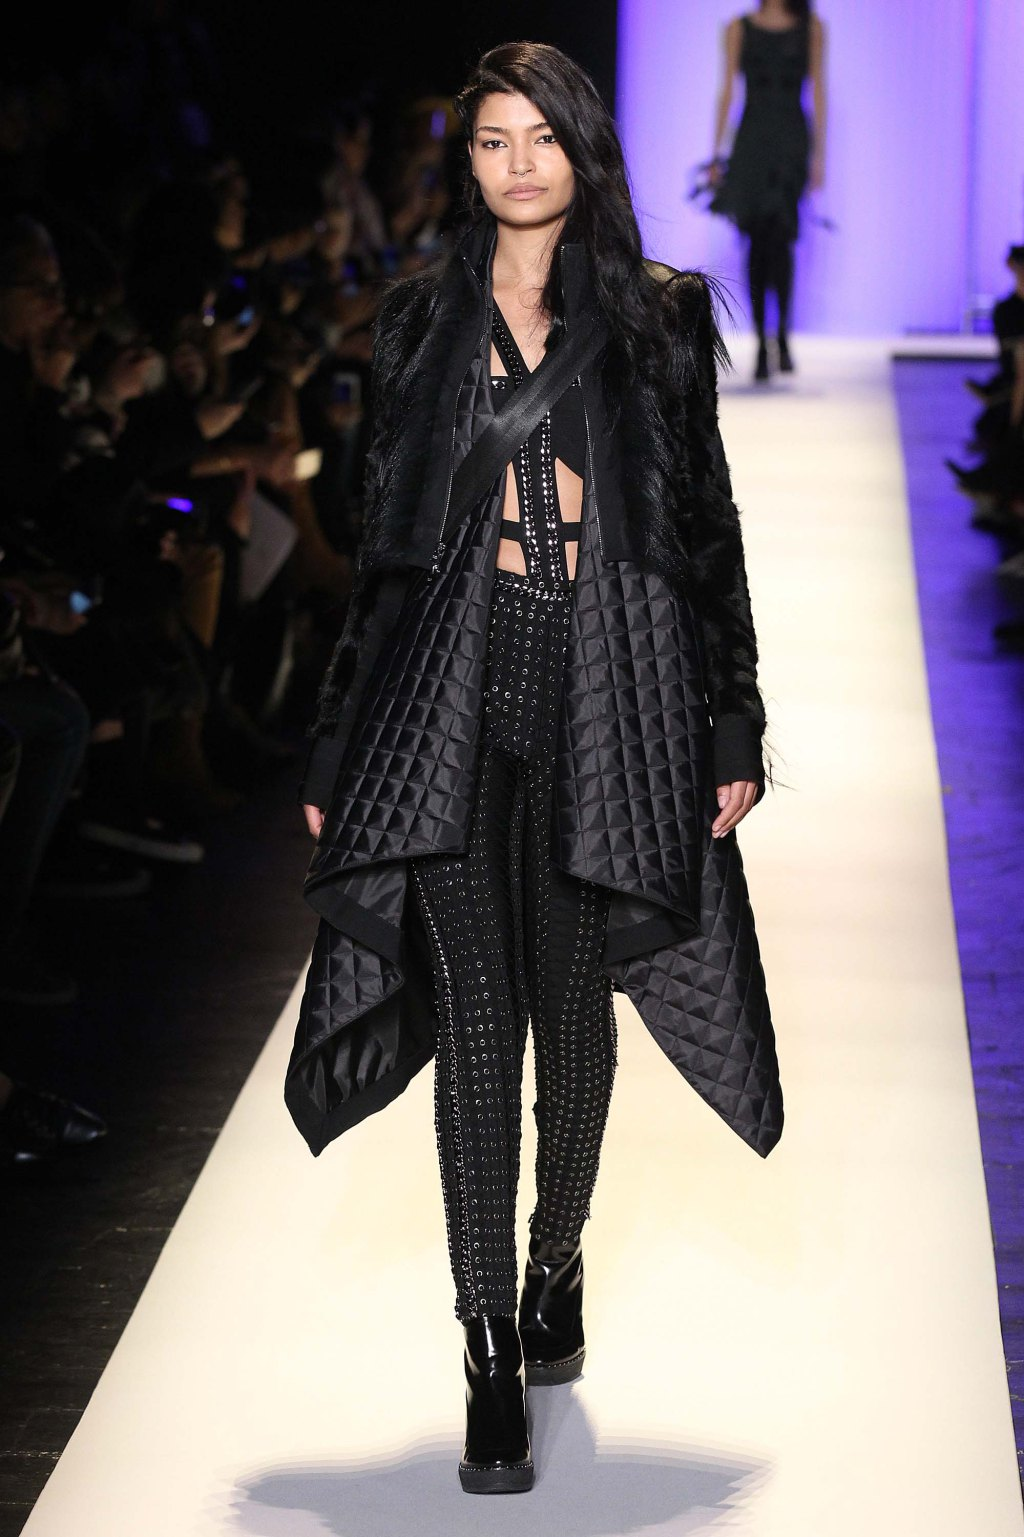 NYFW Hervé Léger Fashion Show Fall:Winter 2016 Louboutins & Love Fashion Blog Esther Santer NYC Street Style Models Collection Hair Makeup Bandage Dresses Pretty Trends Fringe Pink White Inspo Press Event Coverage Details Photos Jacket Hair Outfit .jpg